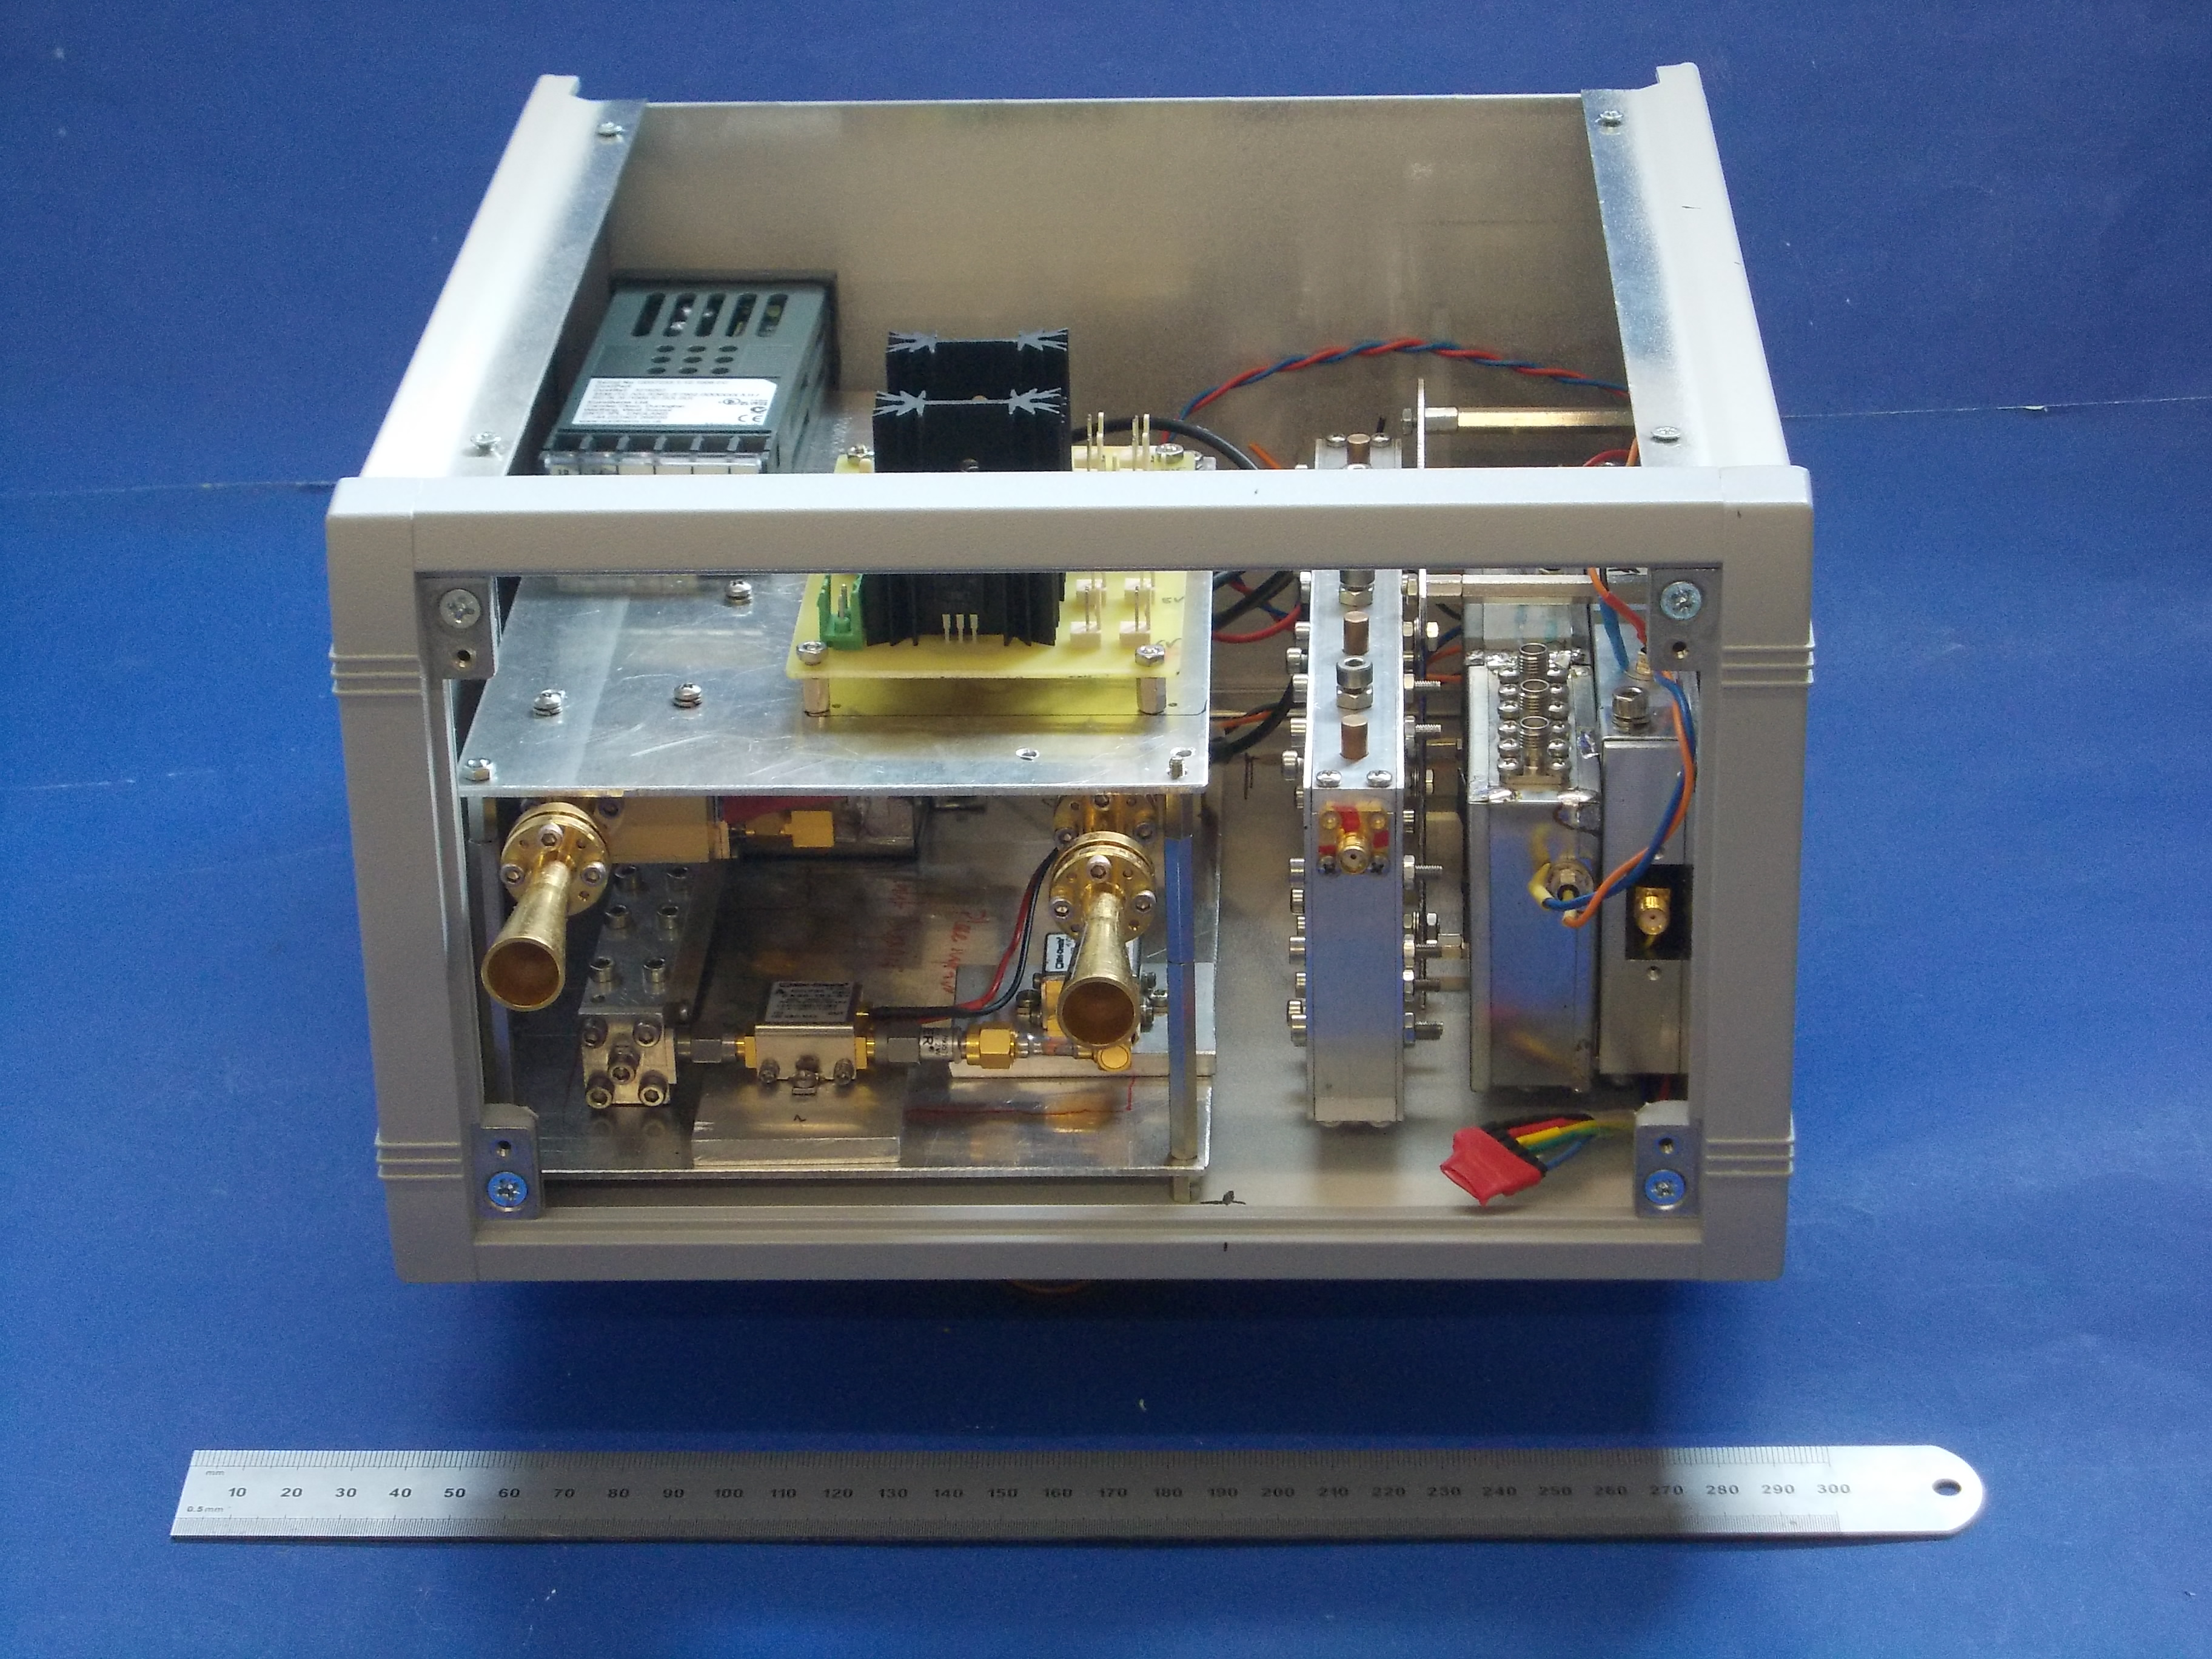 94GHz Radar for civilian structure monitoring